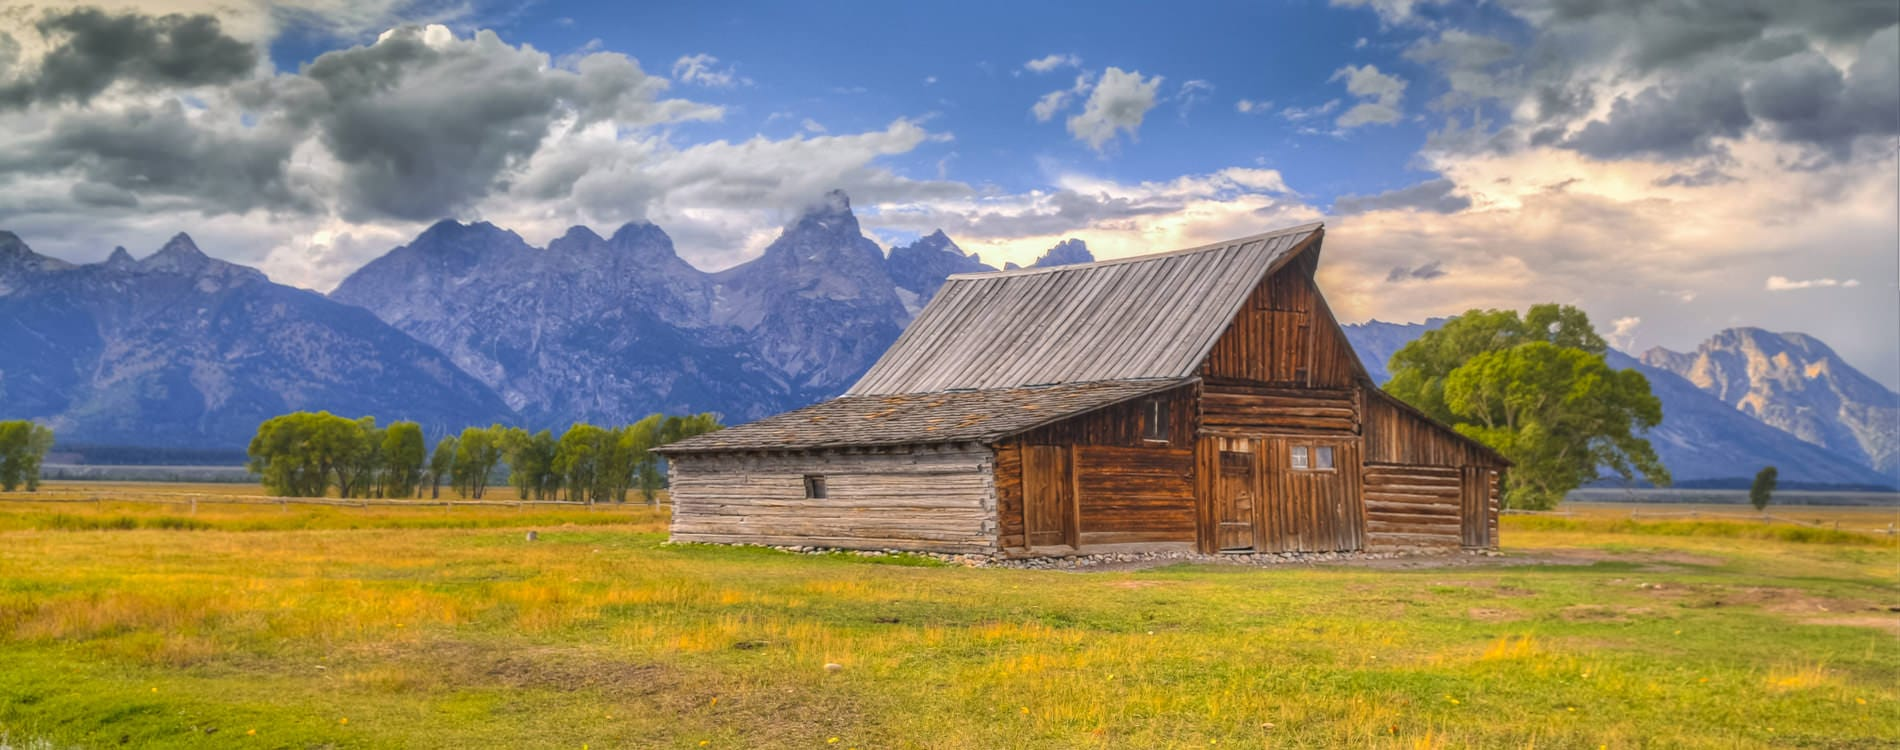 Mormon Row in Grand Teton National Park Wyoming